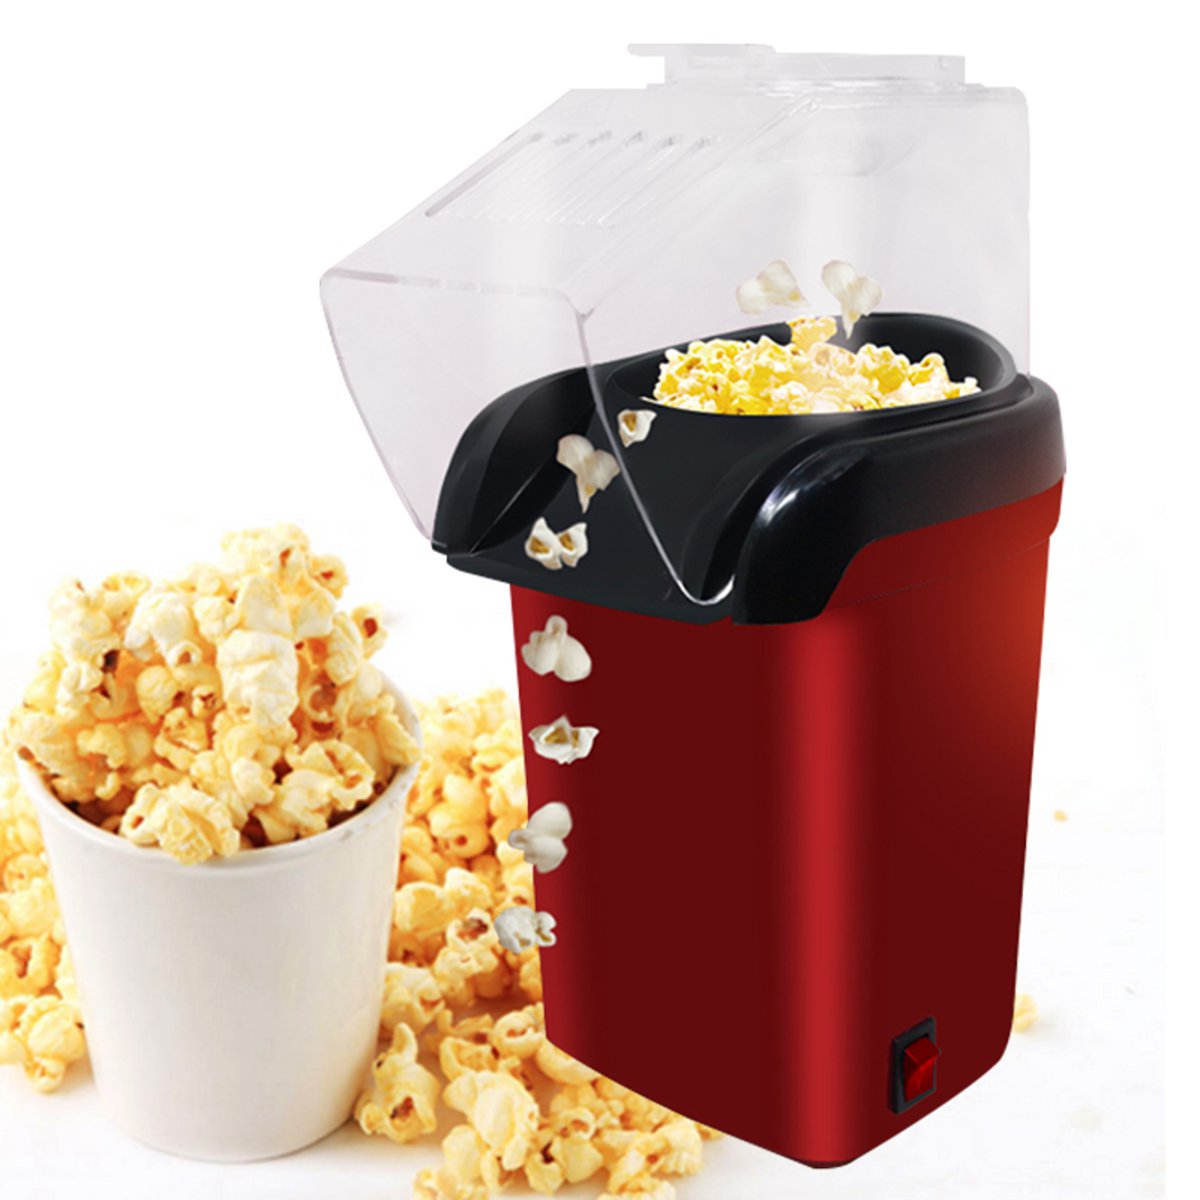 Mini Household Healthy Hot Air Oil-free Popcorn Maker Home Kitchen Machine Tools Bread Maker